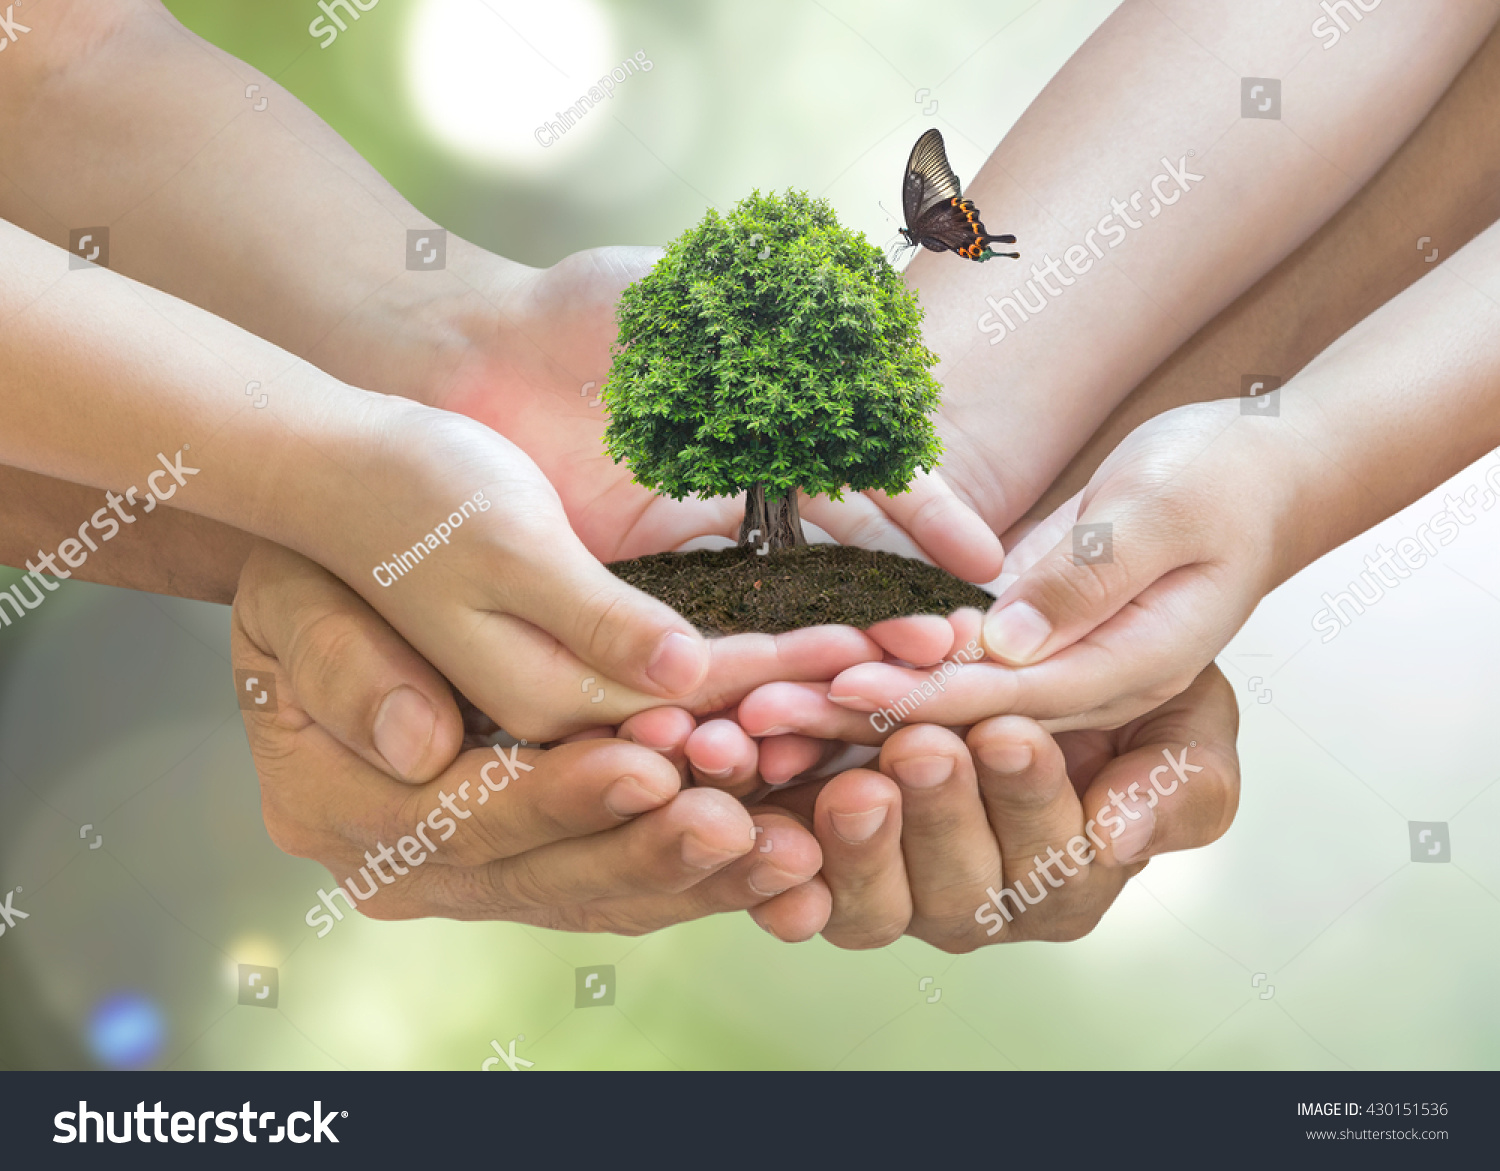 Parent and children planting together big tree on family hands w/ butterfly on blur nature greenery background: World environment day reforesting eco bio arbor CSR ESG ecosystems reforestation concept